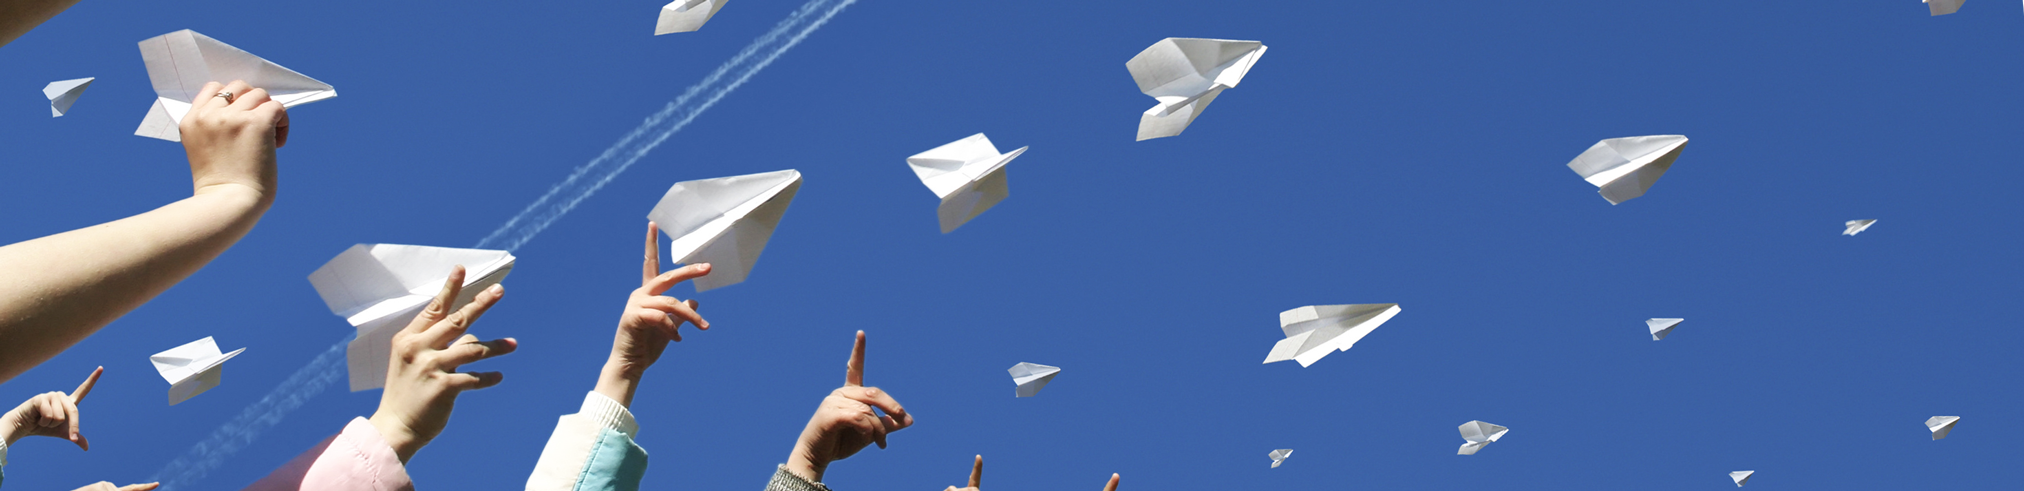 Paper-Airplanes-2024-0519